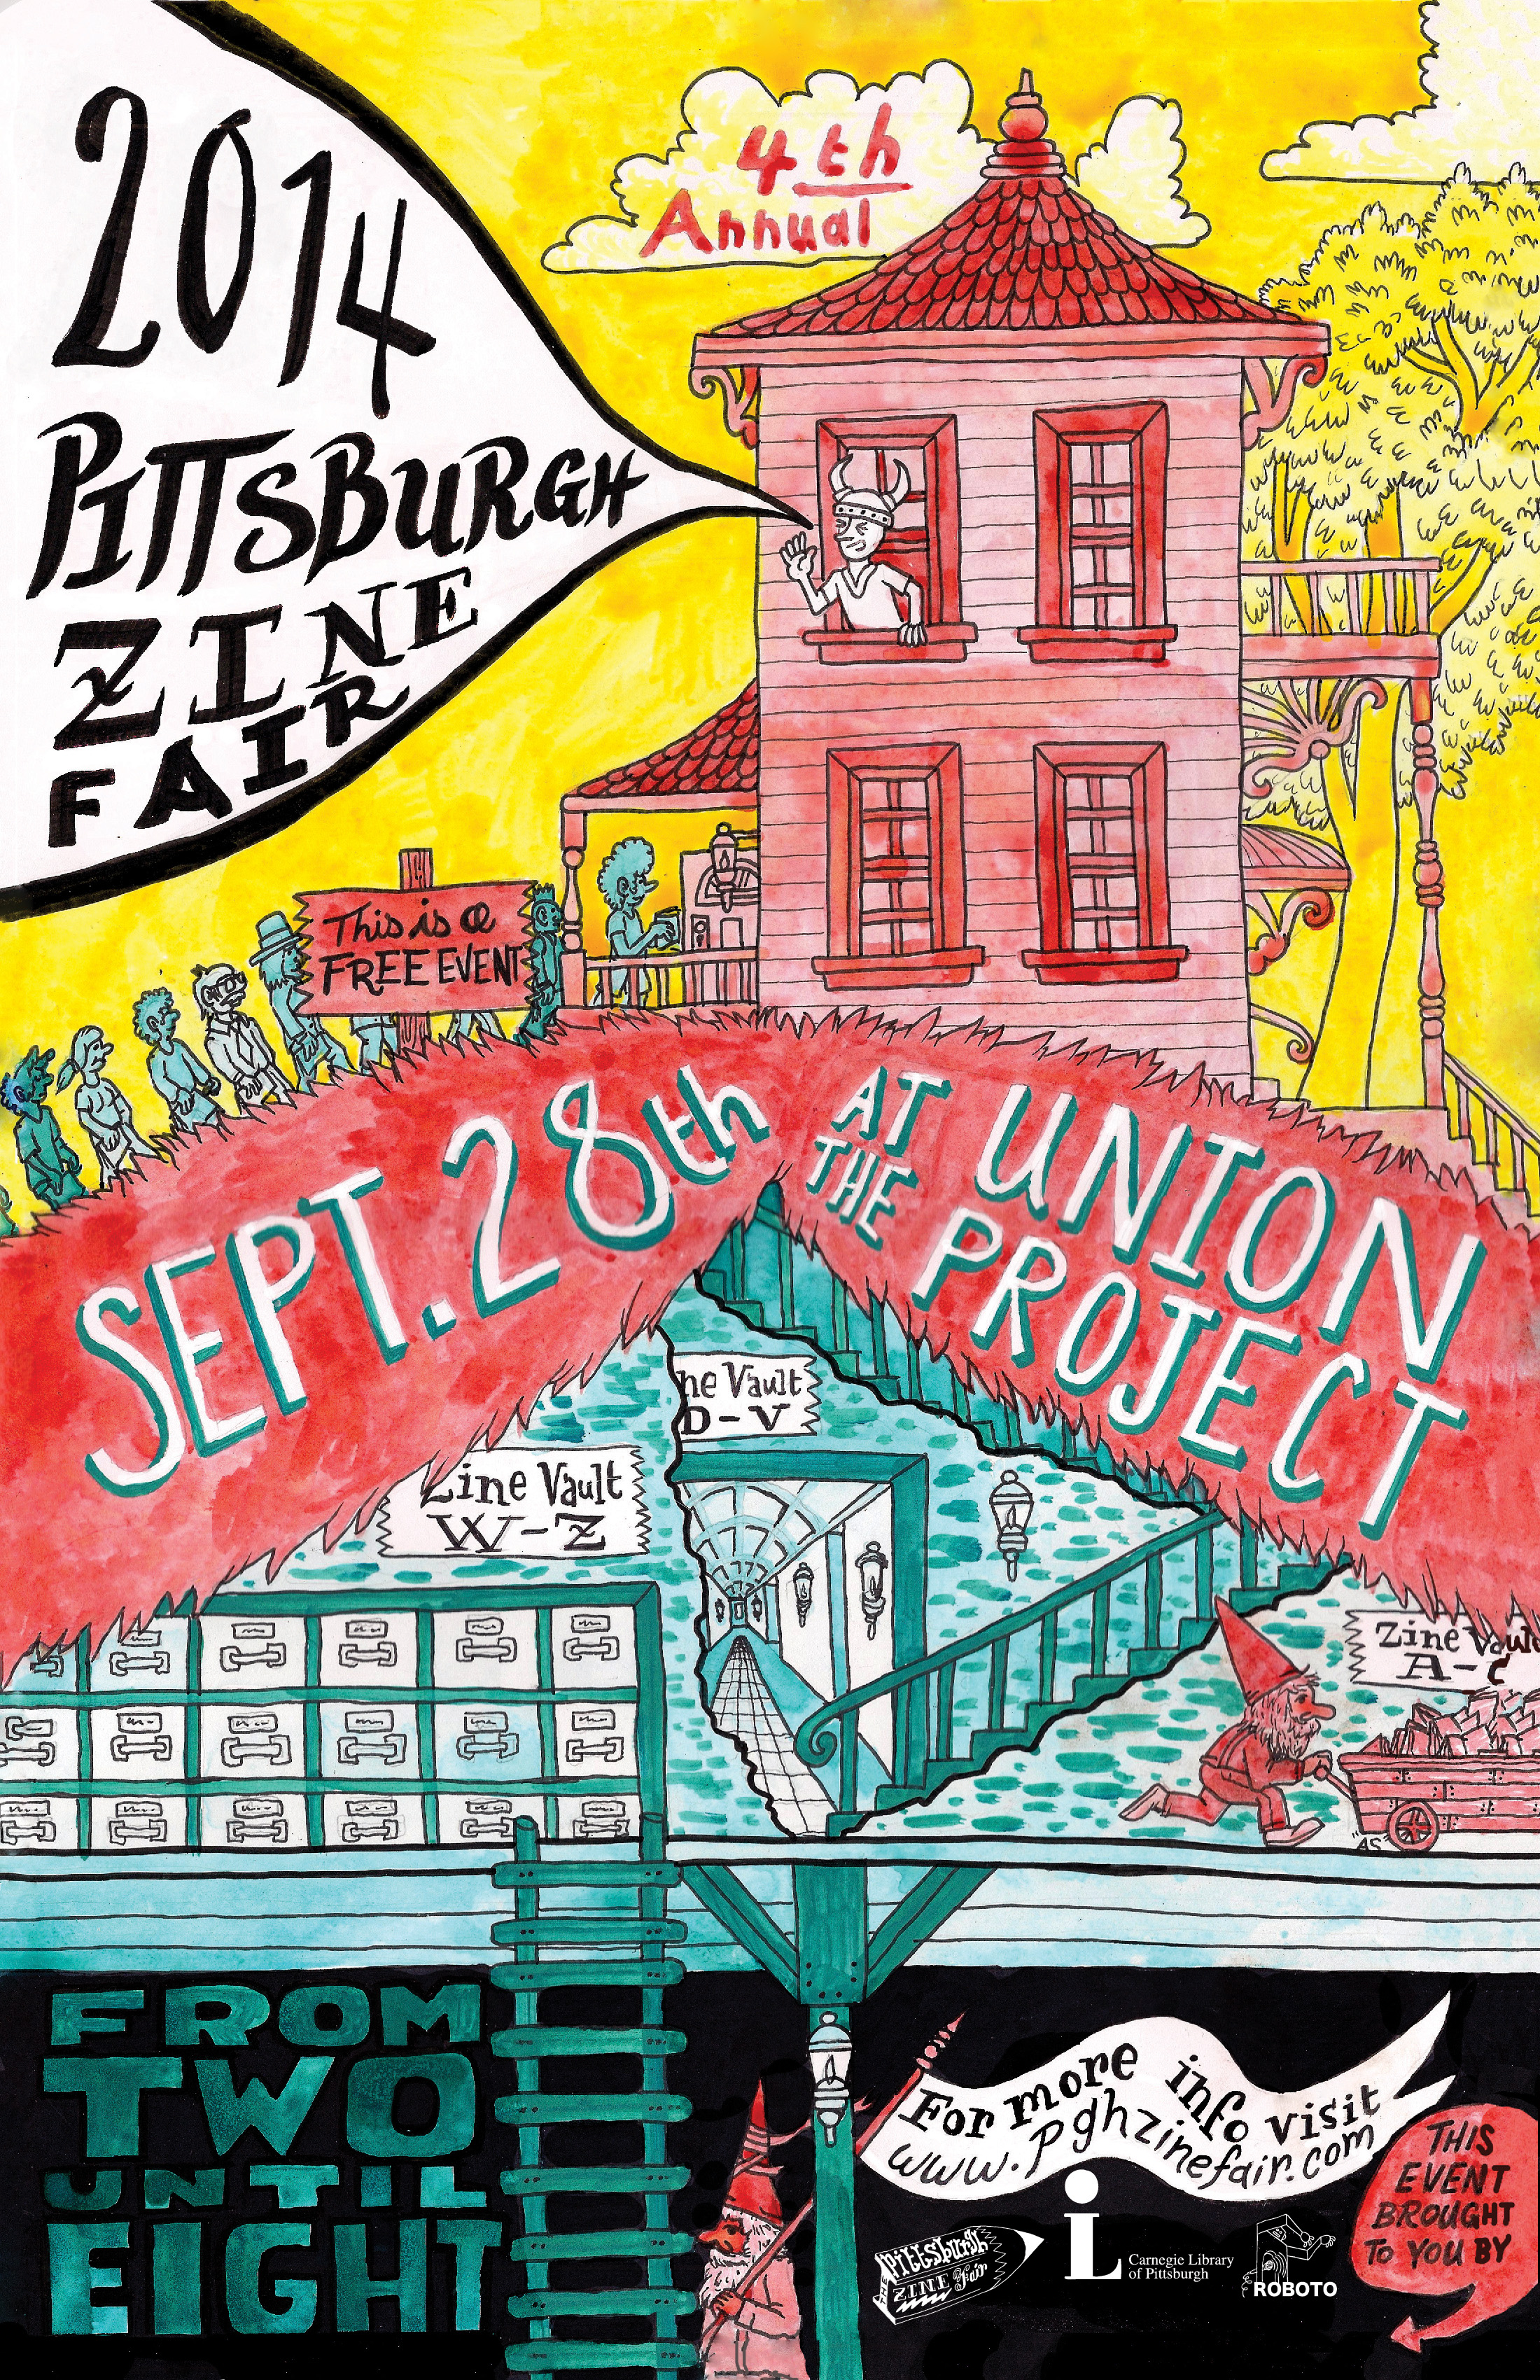 2014 Pittsburgh Zine Fair Poster